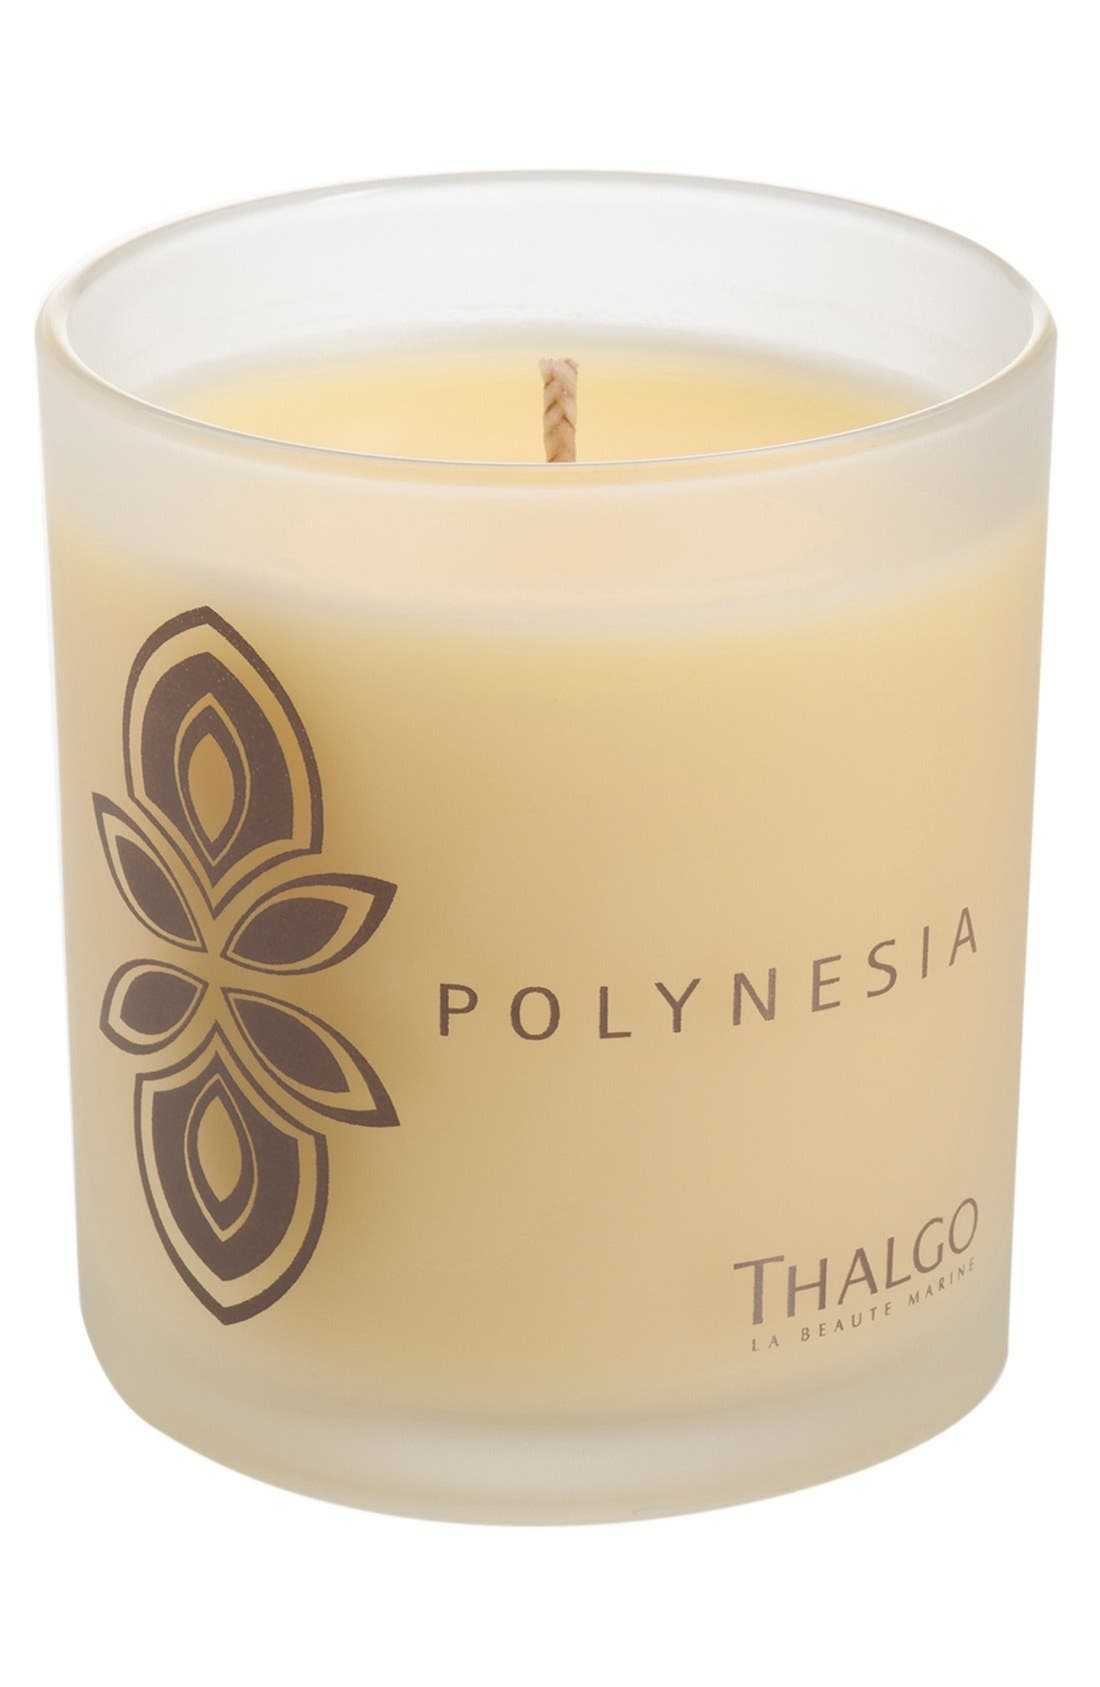 'Polynesia' Scented Candle,                             Main thumbnail 1, color,                             NO COLOR